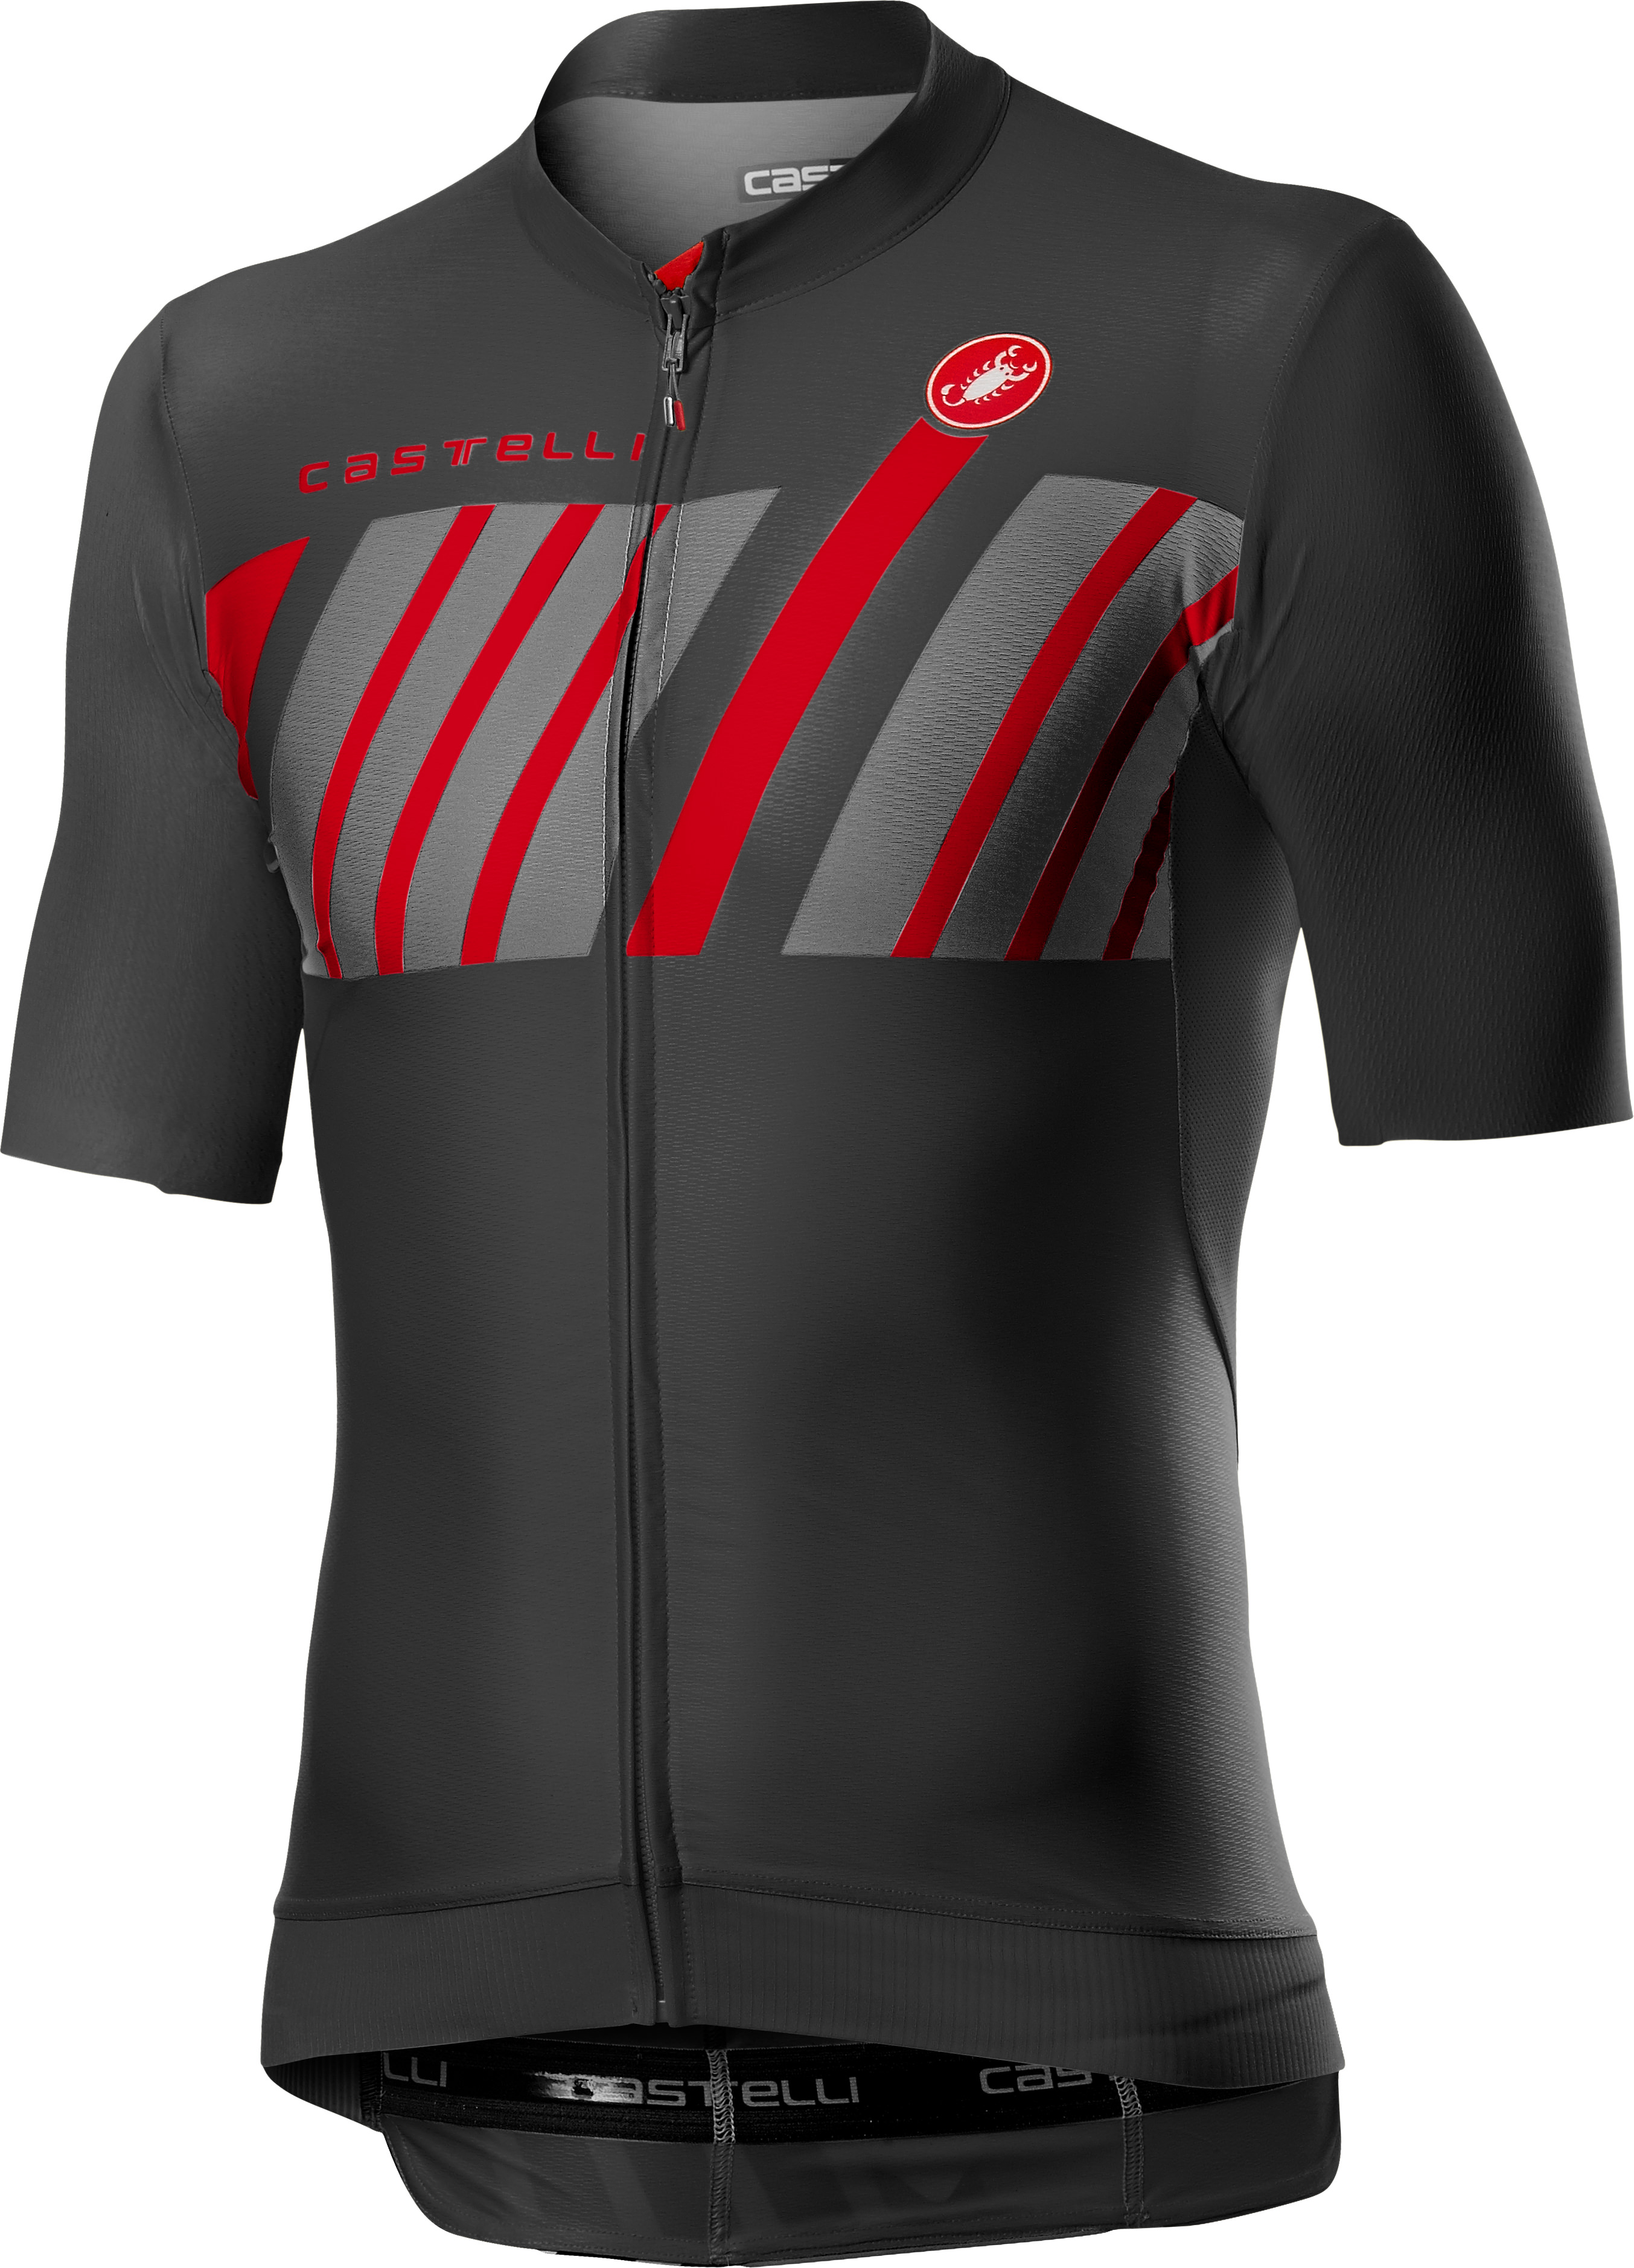 Cyklodres CASTELLI HORS CATEGORIE JERSEY